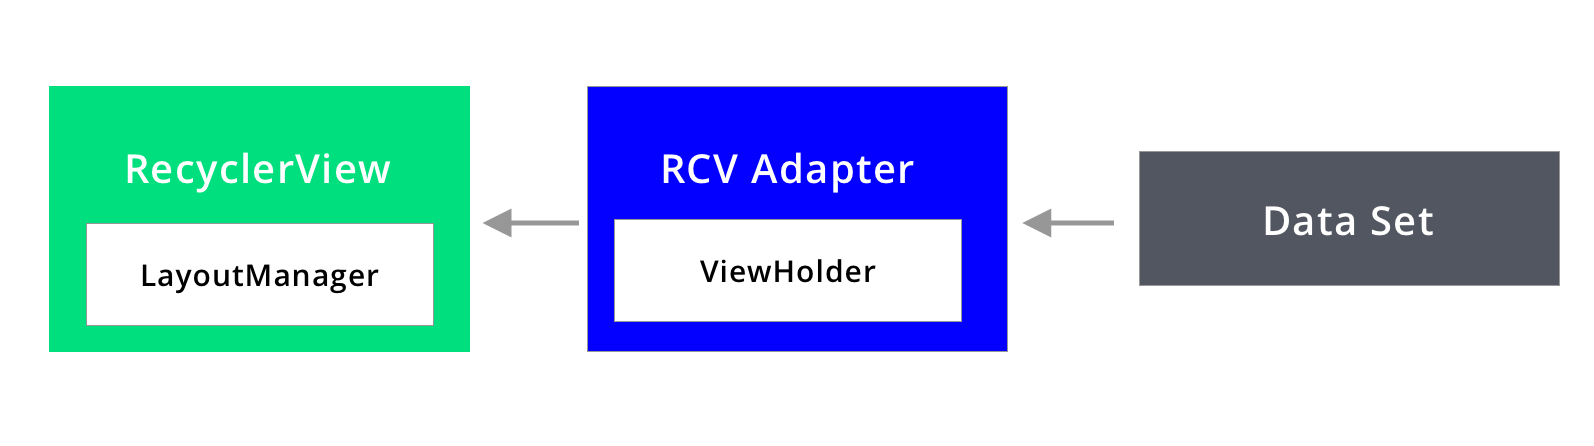 How does RecyclerView work internally?